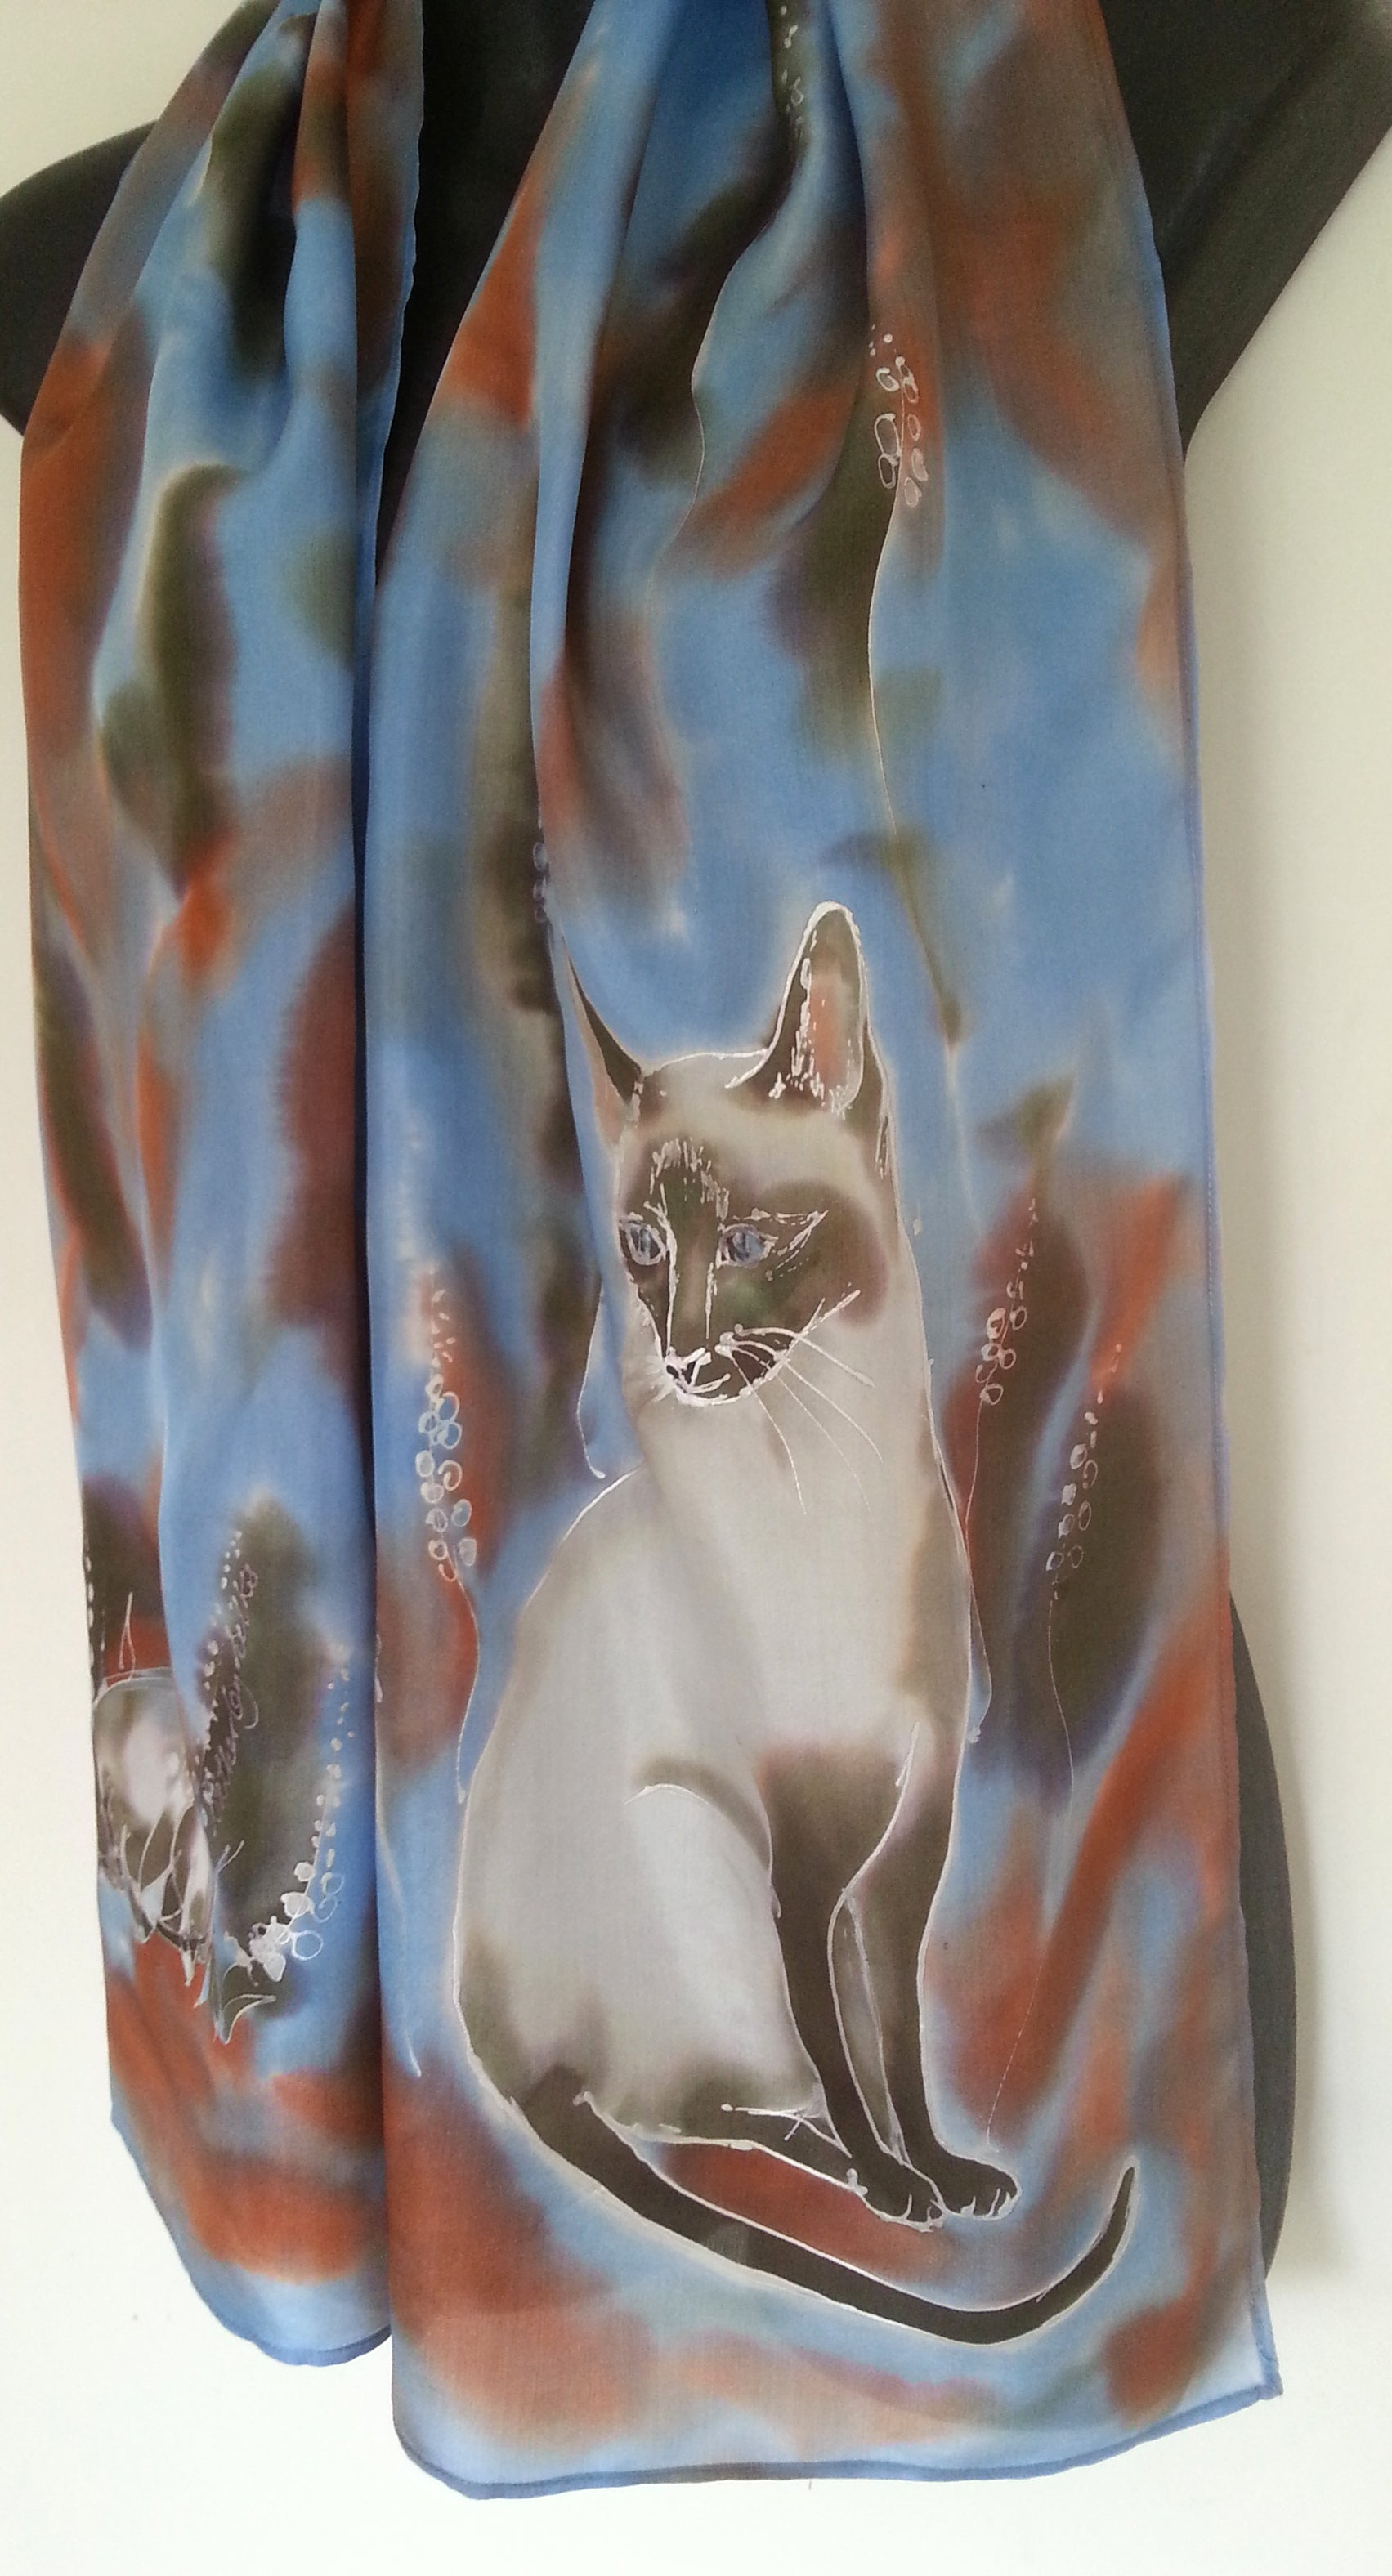 Siamese Cat  - Hand painted Silk Scarf - Satherley Silks NZ